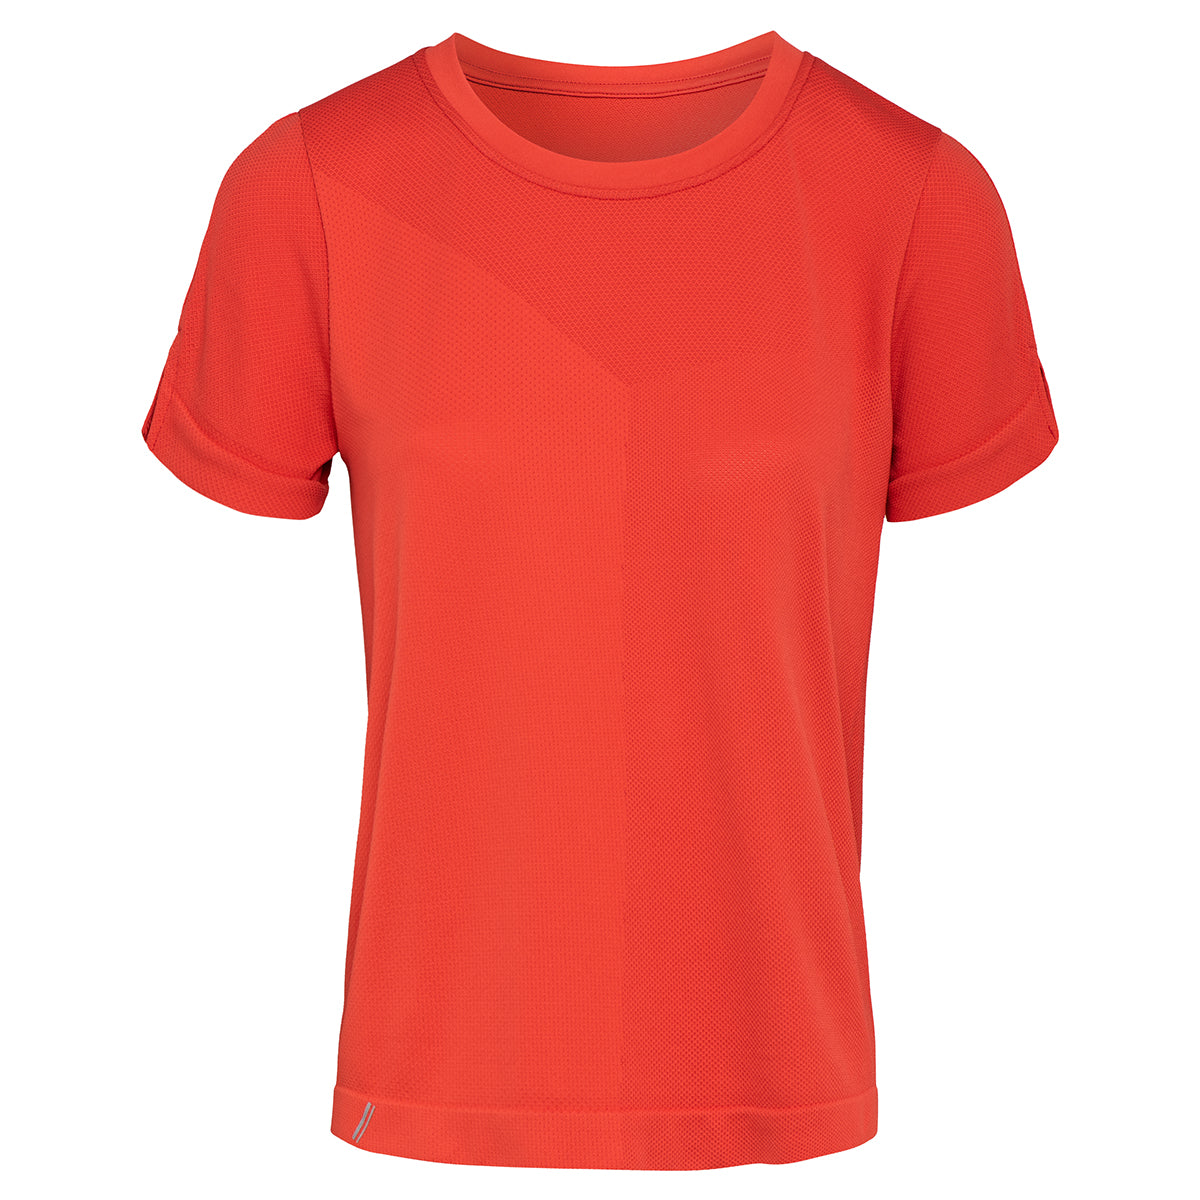 Le t-shirt running & fitness femmes.